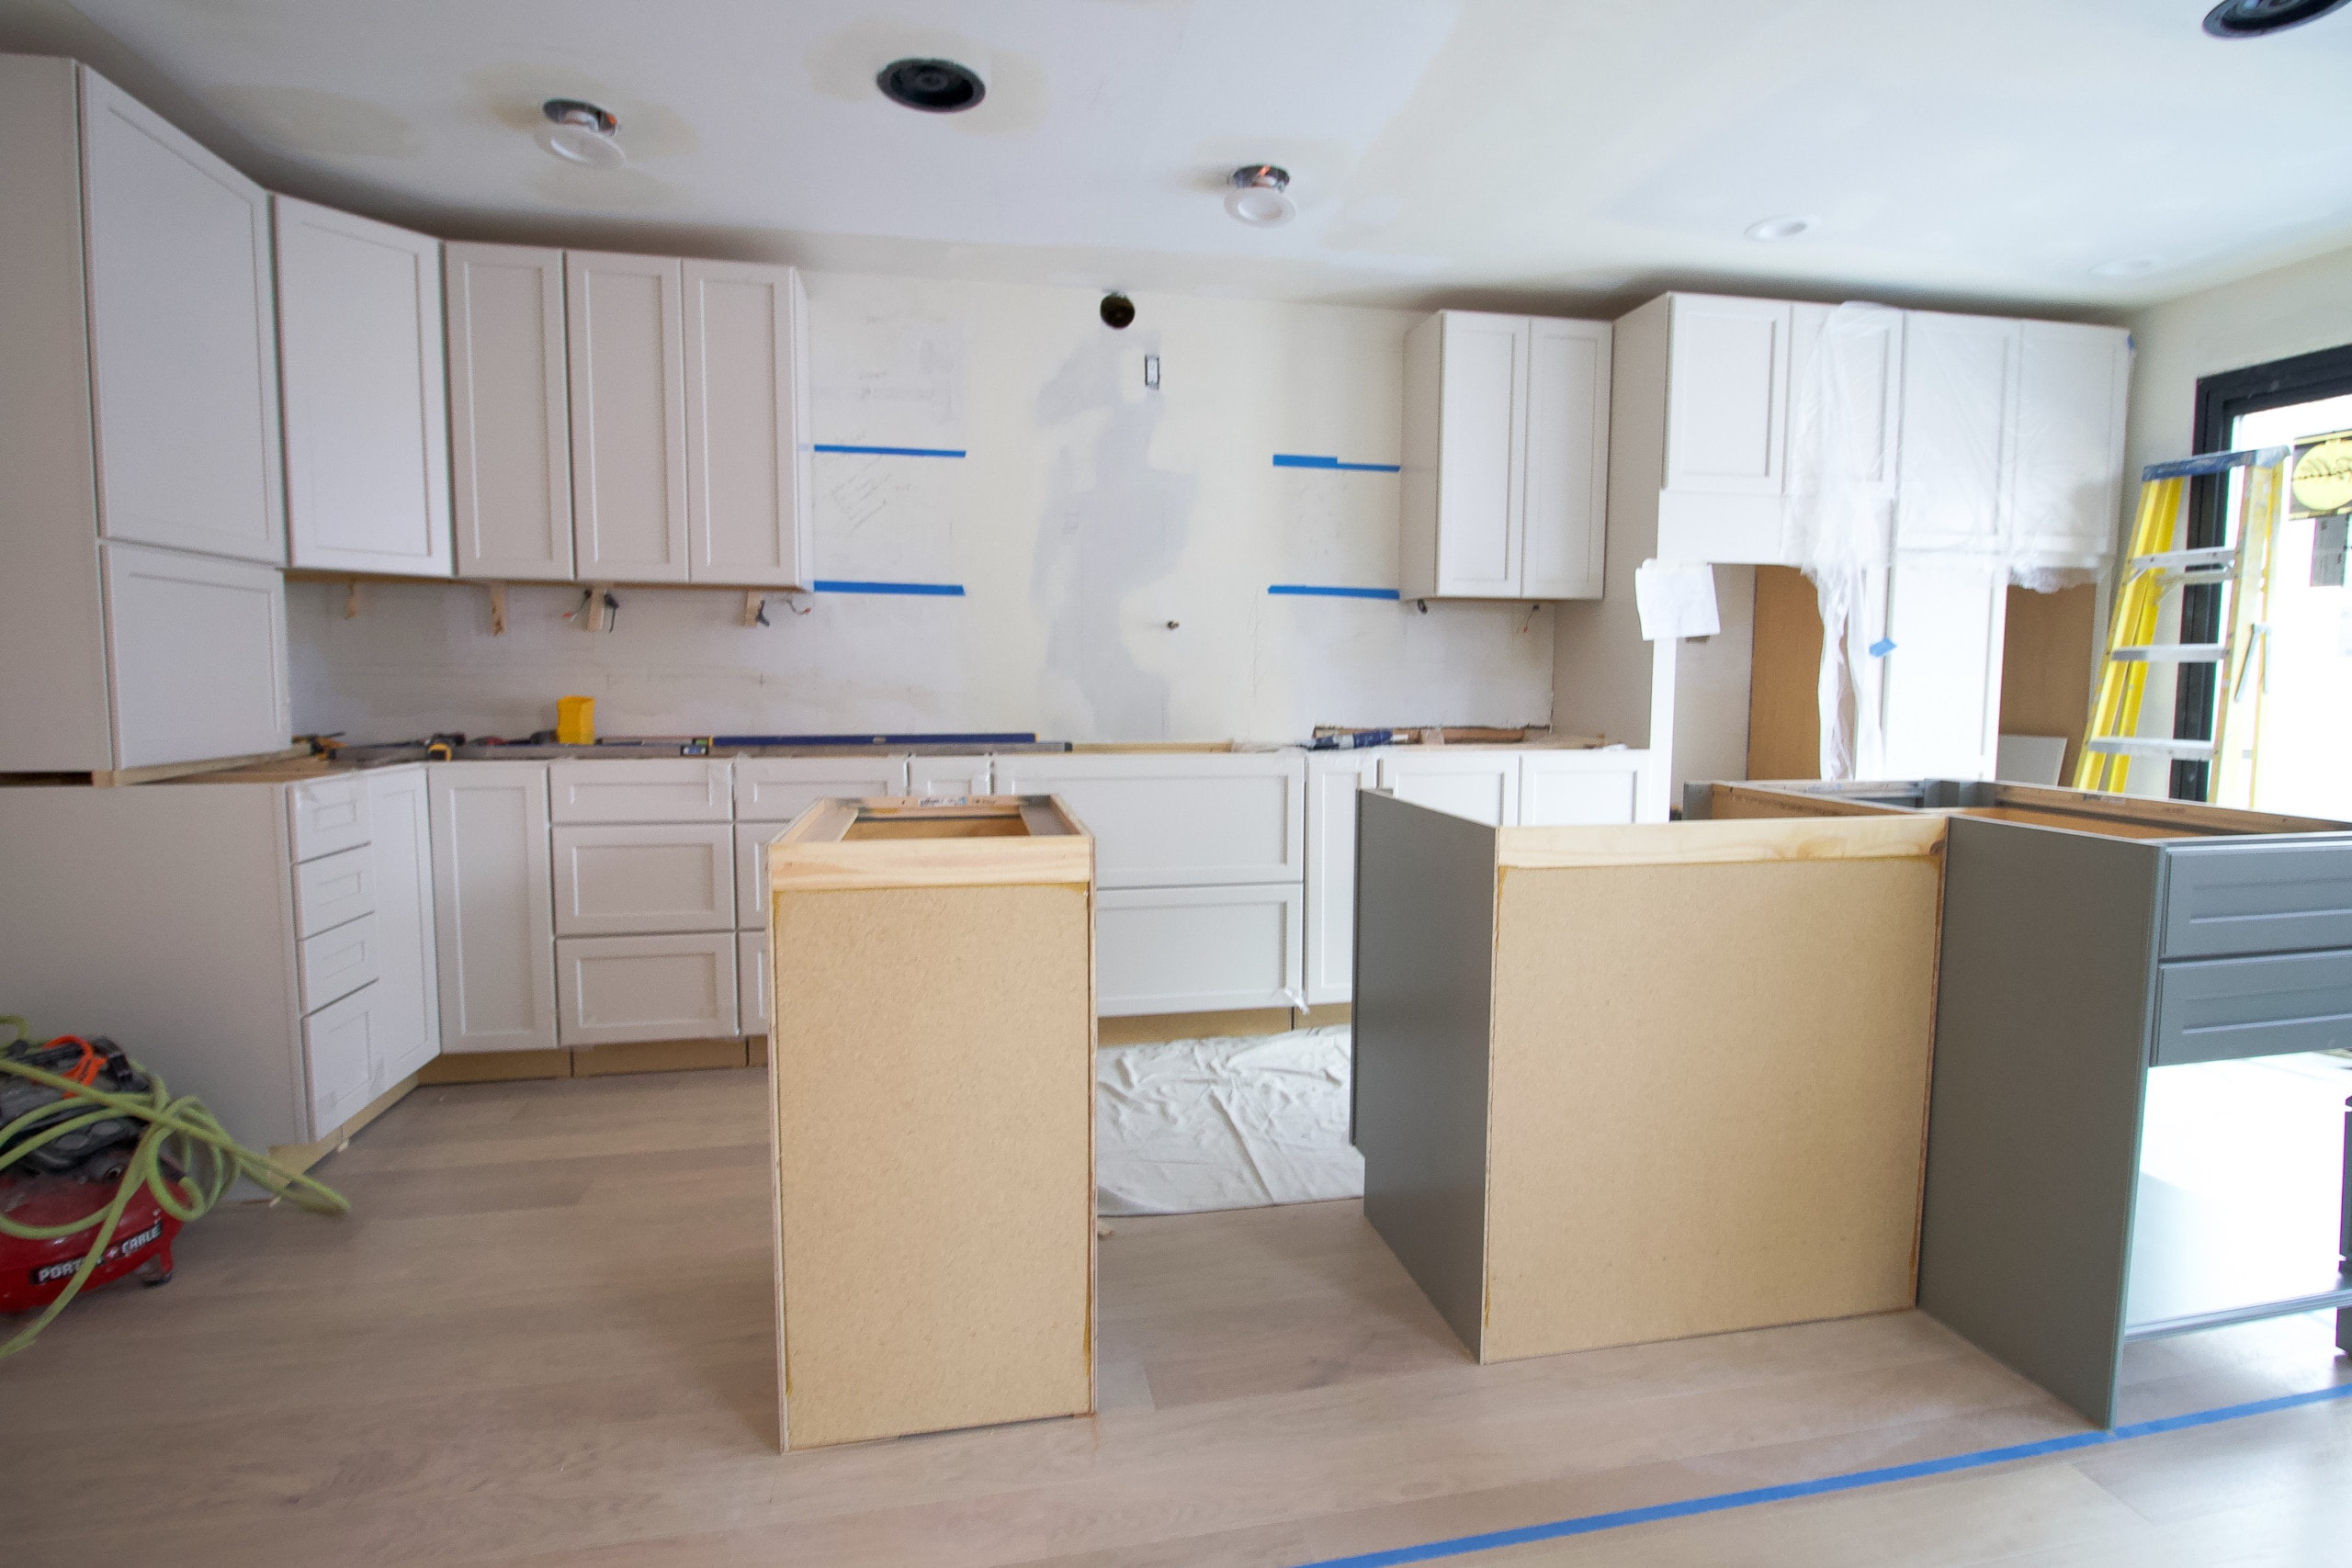 Kitchen cabinet install in our new kitchen